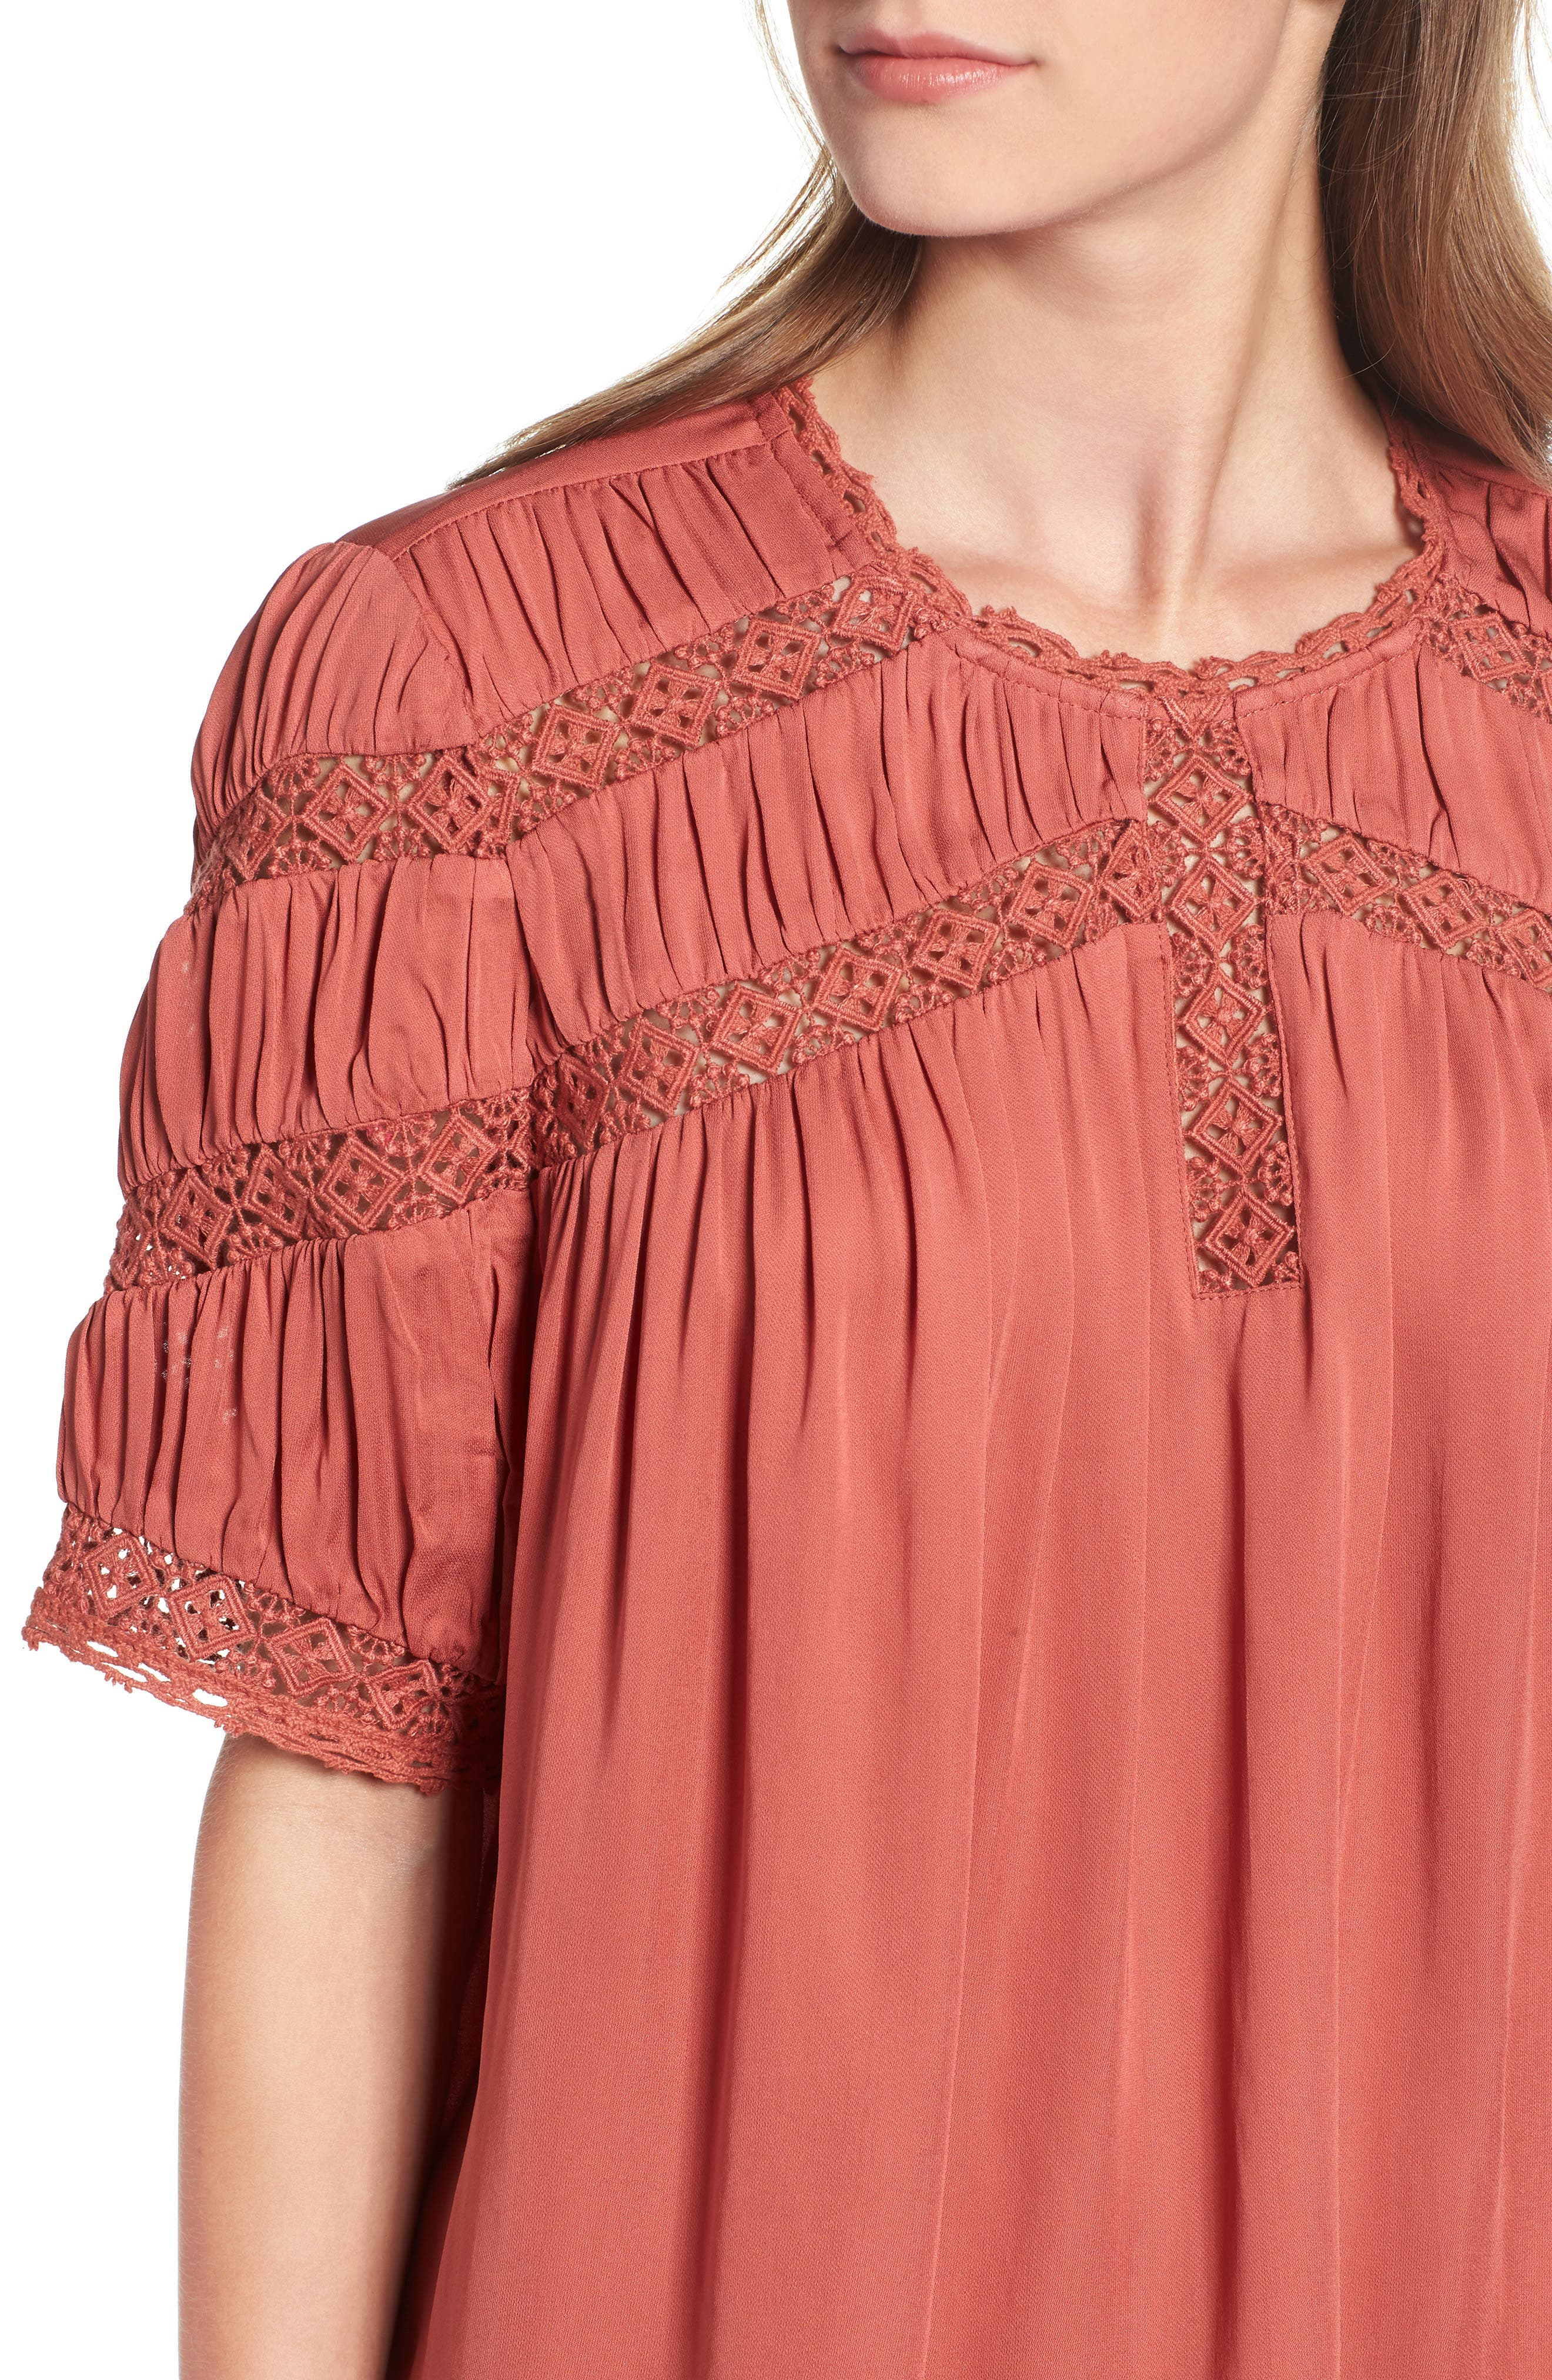 HINGE,                             Gathered Lace Top,                             Alternate thumbnail 4, color,                             660